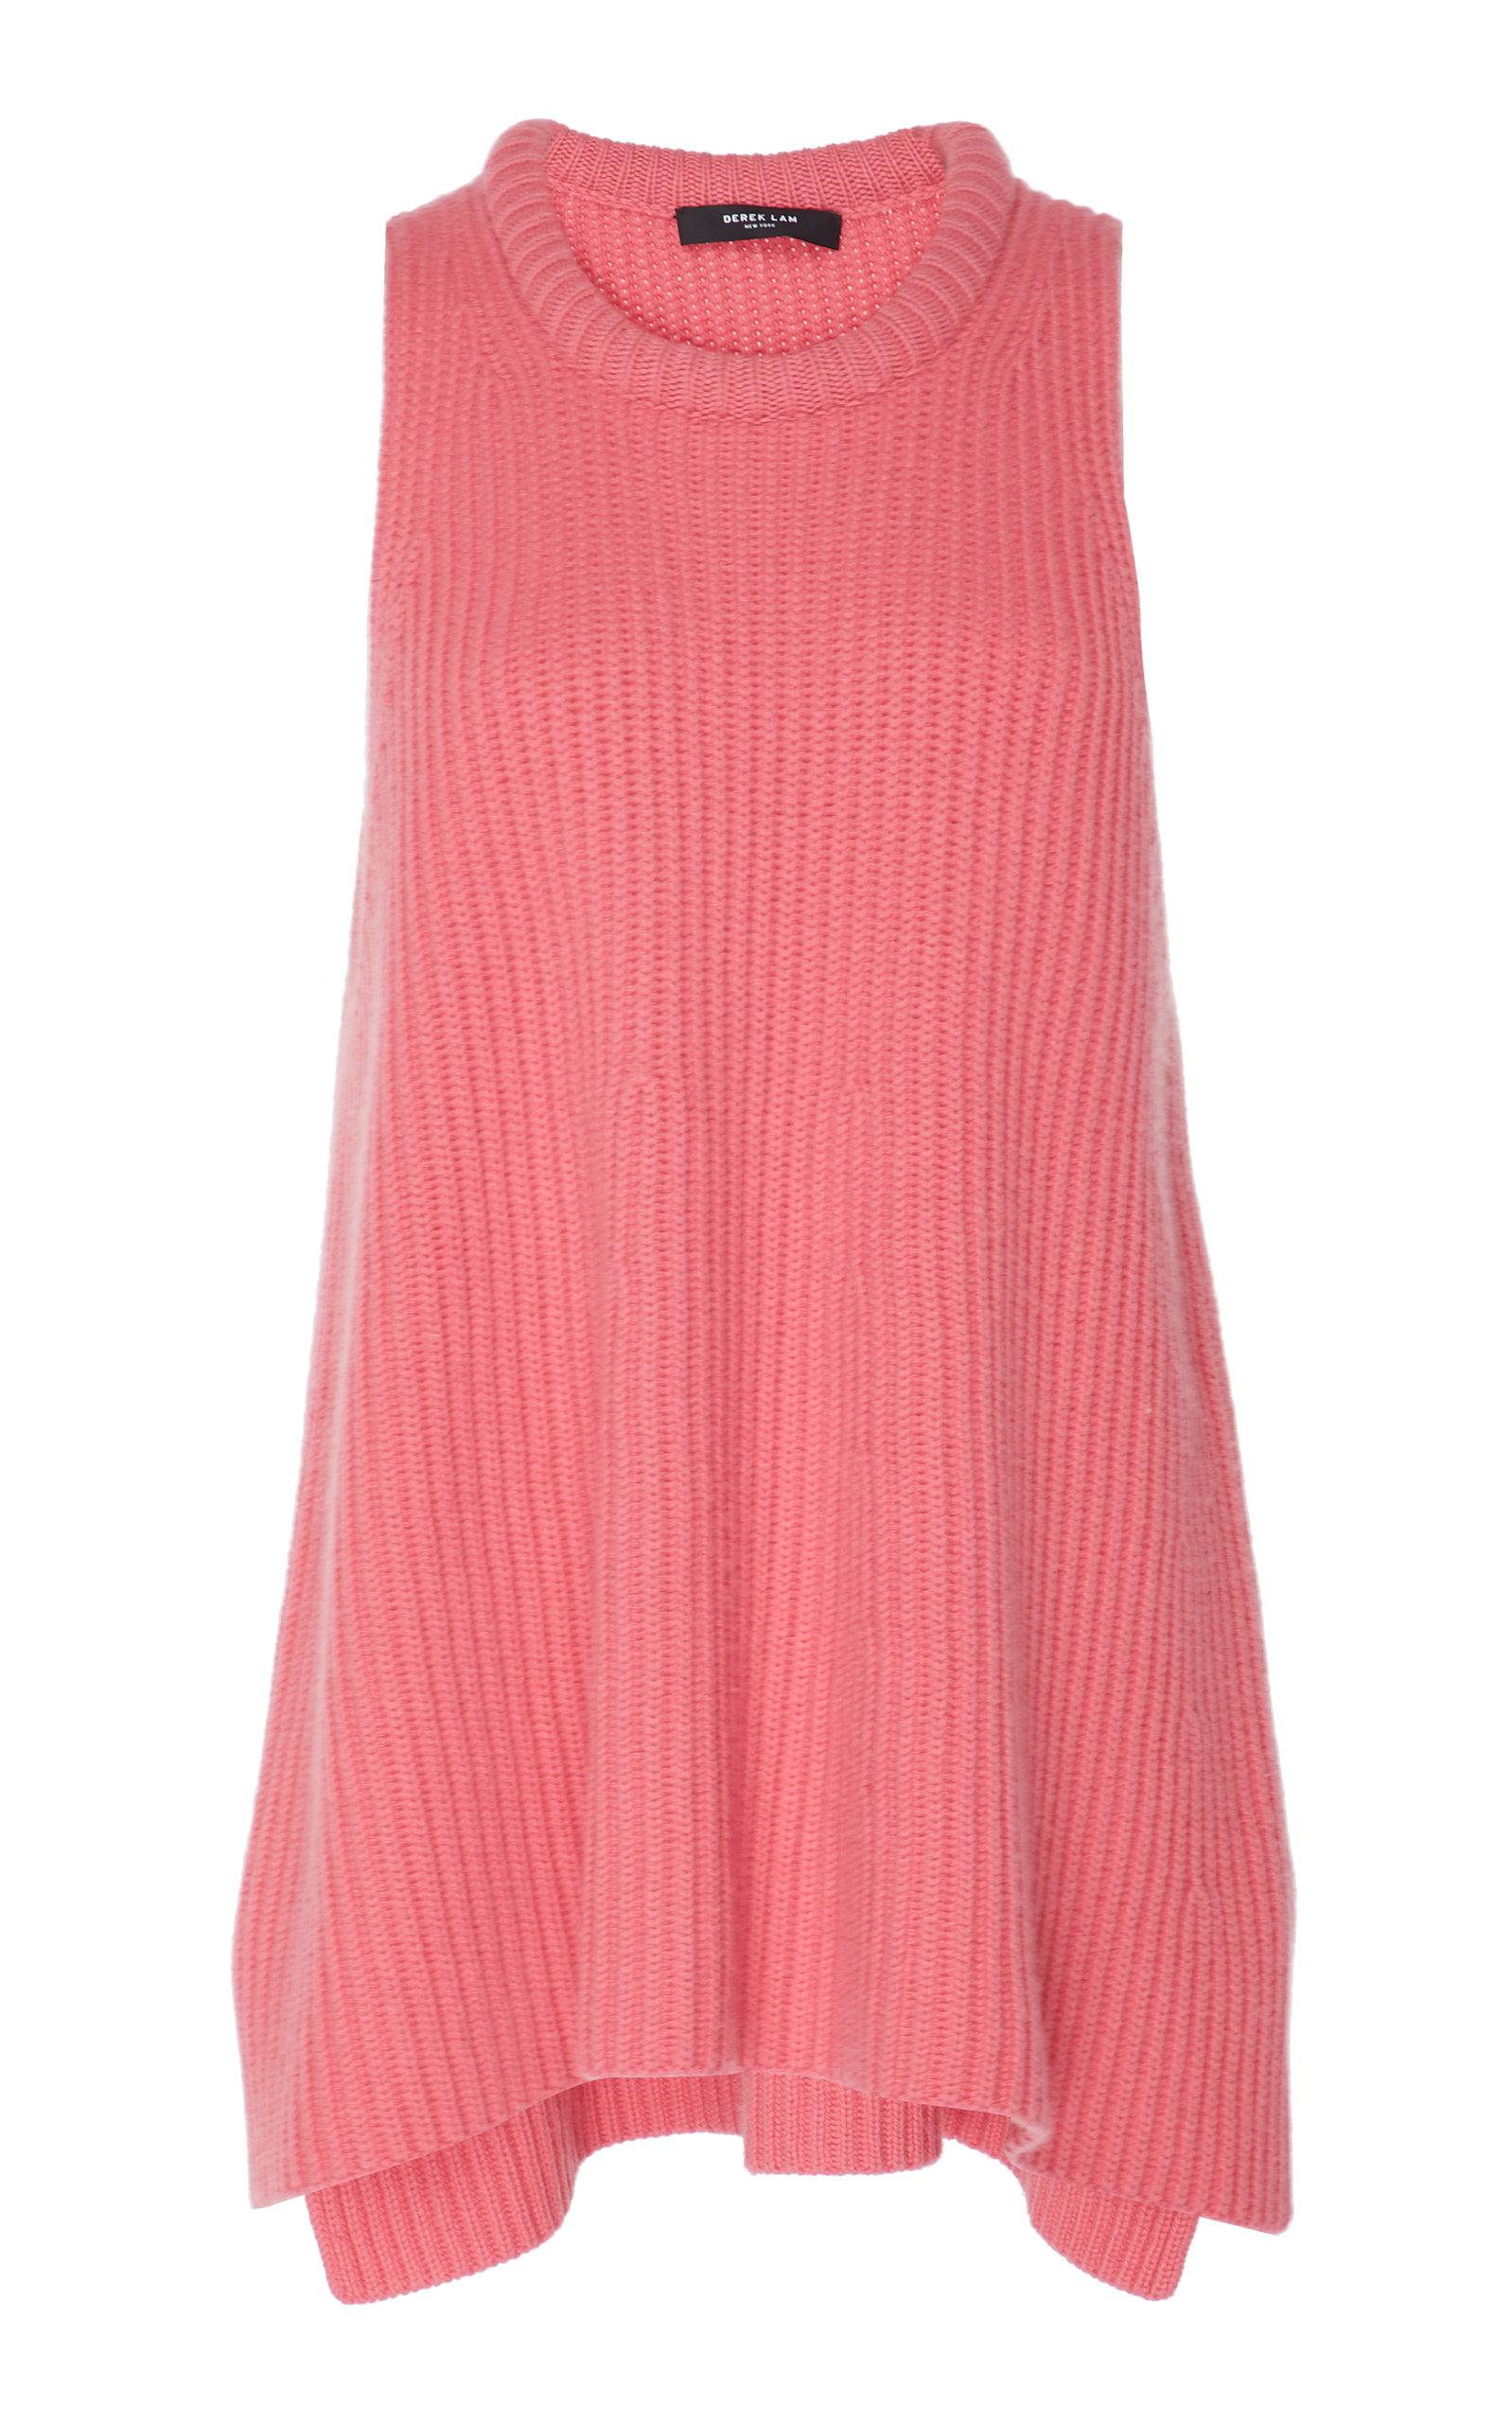 83117847a1030 Lyst - Derek Lam Rib Knit A-line Cashmere Tank Top in Pink